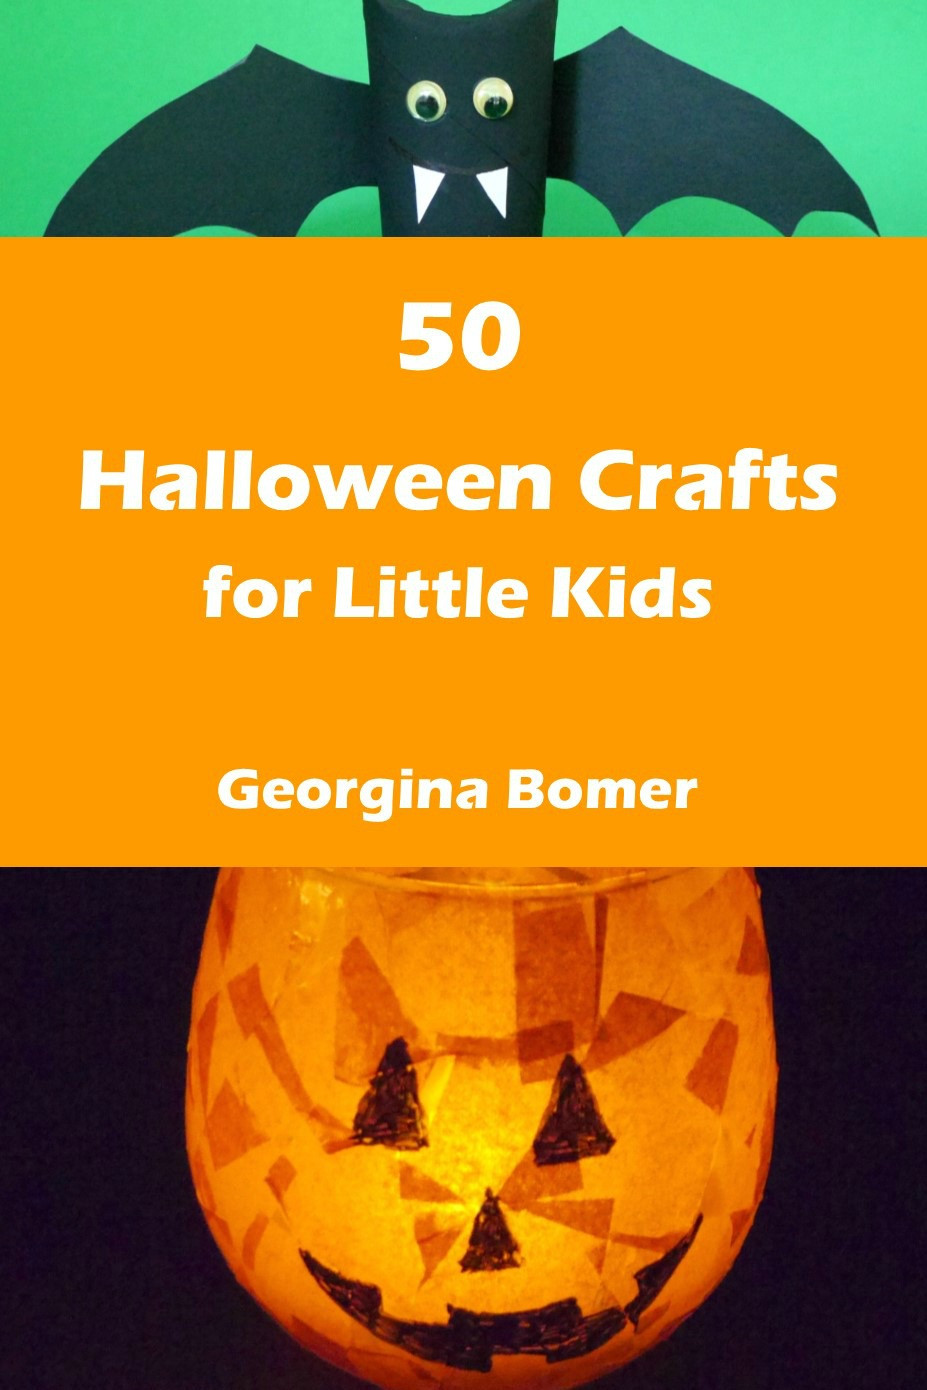 Crafts For Little Kids  50 Halloween Crafts for Little Kids the book Craftulate